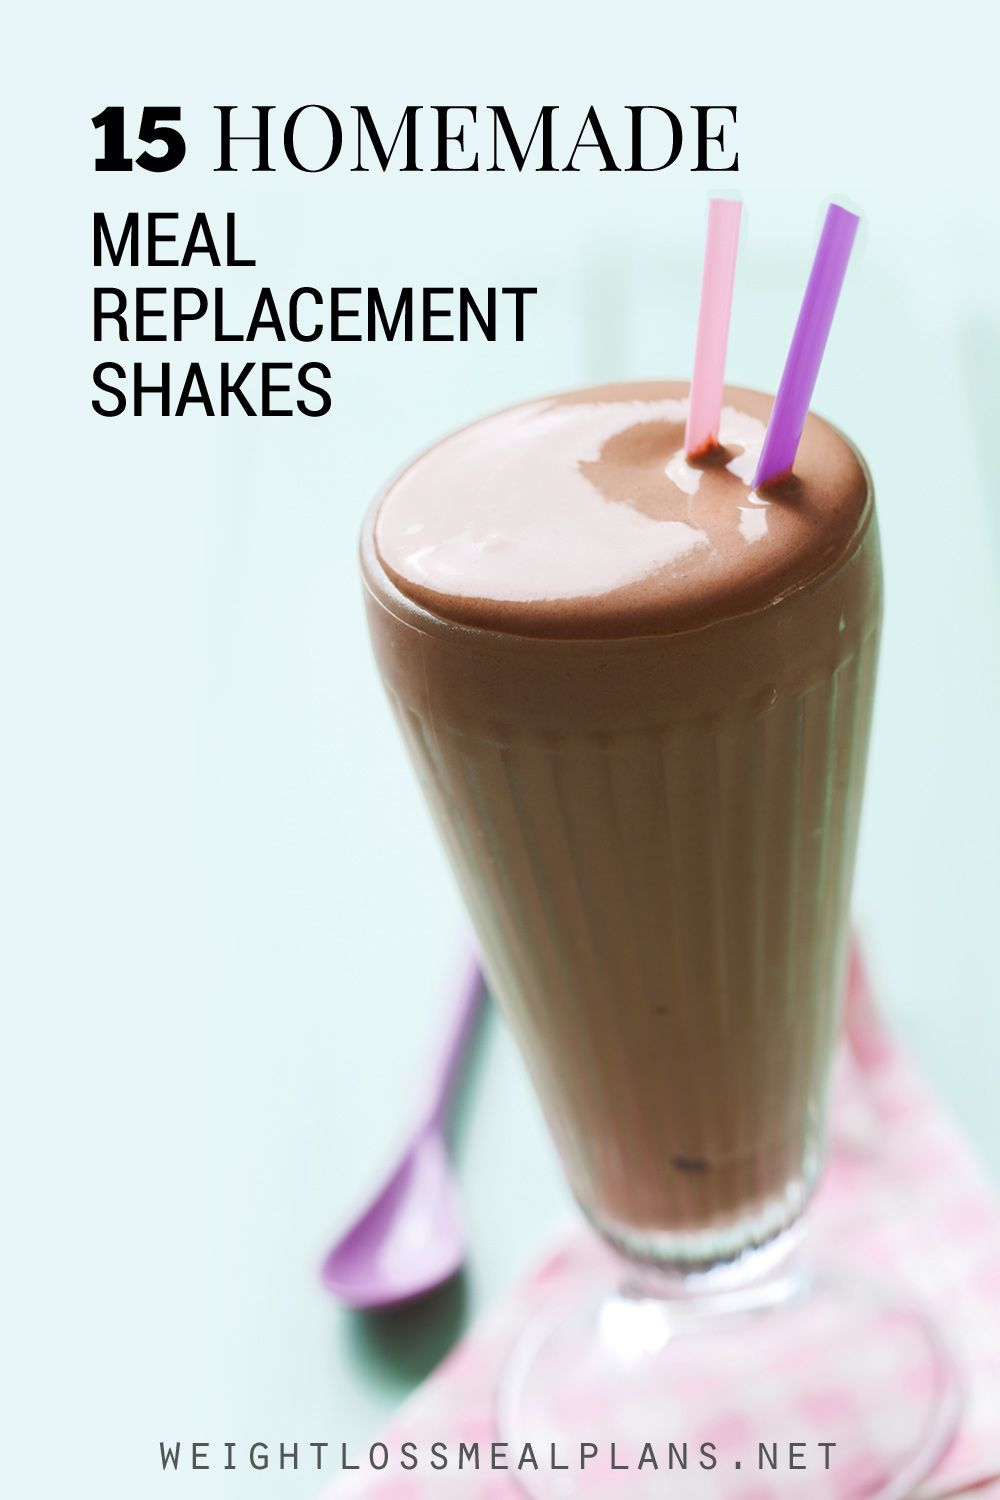 Homemade meal replacement shakes should not be the main source of your energy. The safest plan is to use them to replace one meal a day.